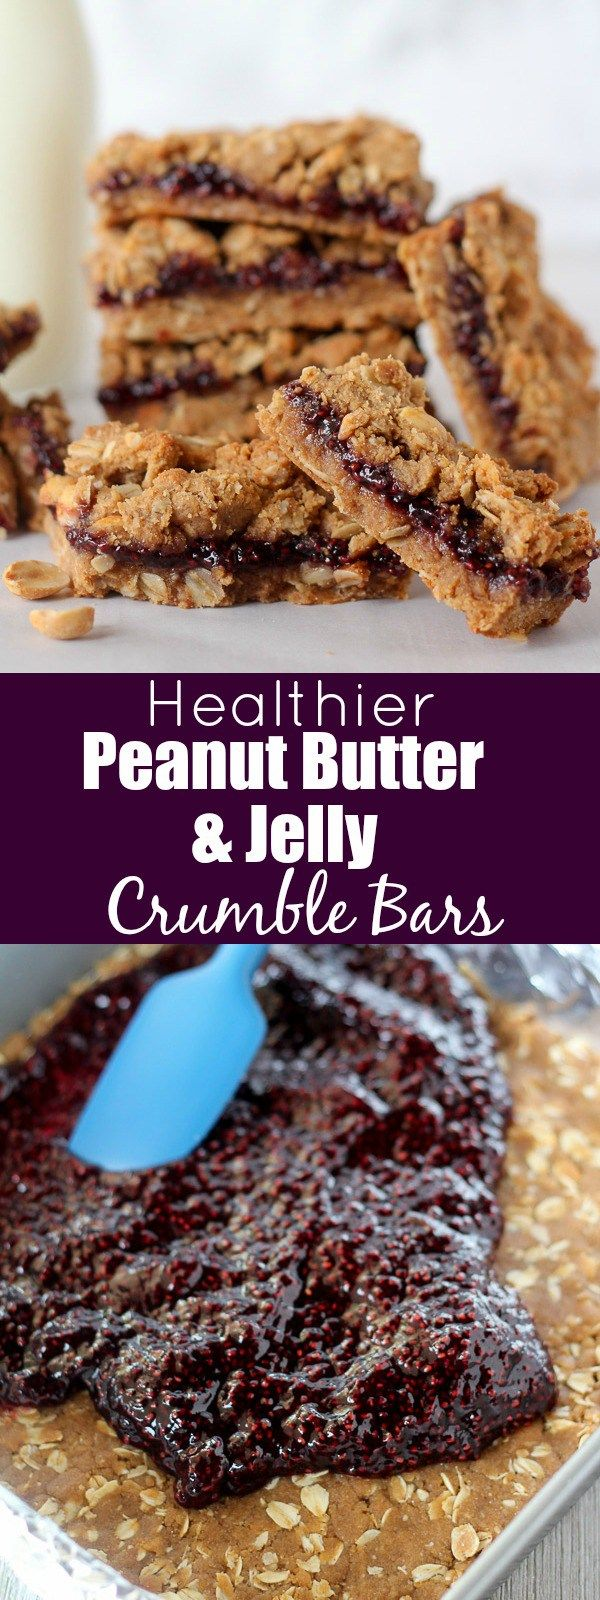 Healthier Peanut Butter and Jelly Crumble Bars - The classic flavors of peanut butter and jelly combine in these healthier crumble bars. A whole-grain brown sugar oat crust, Welch's Chia Concord Grape Fruit Spread and a sweet and salty peanut crumble. Enjoy for breakfast, snack or dessert. #Welchs #WelchsChia ad @walmart